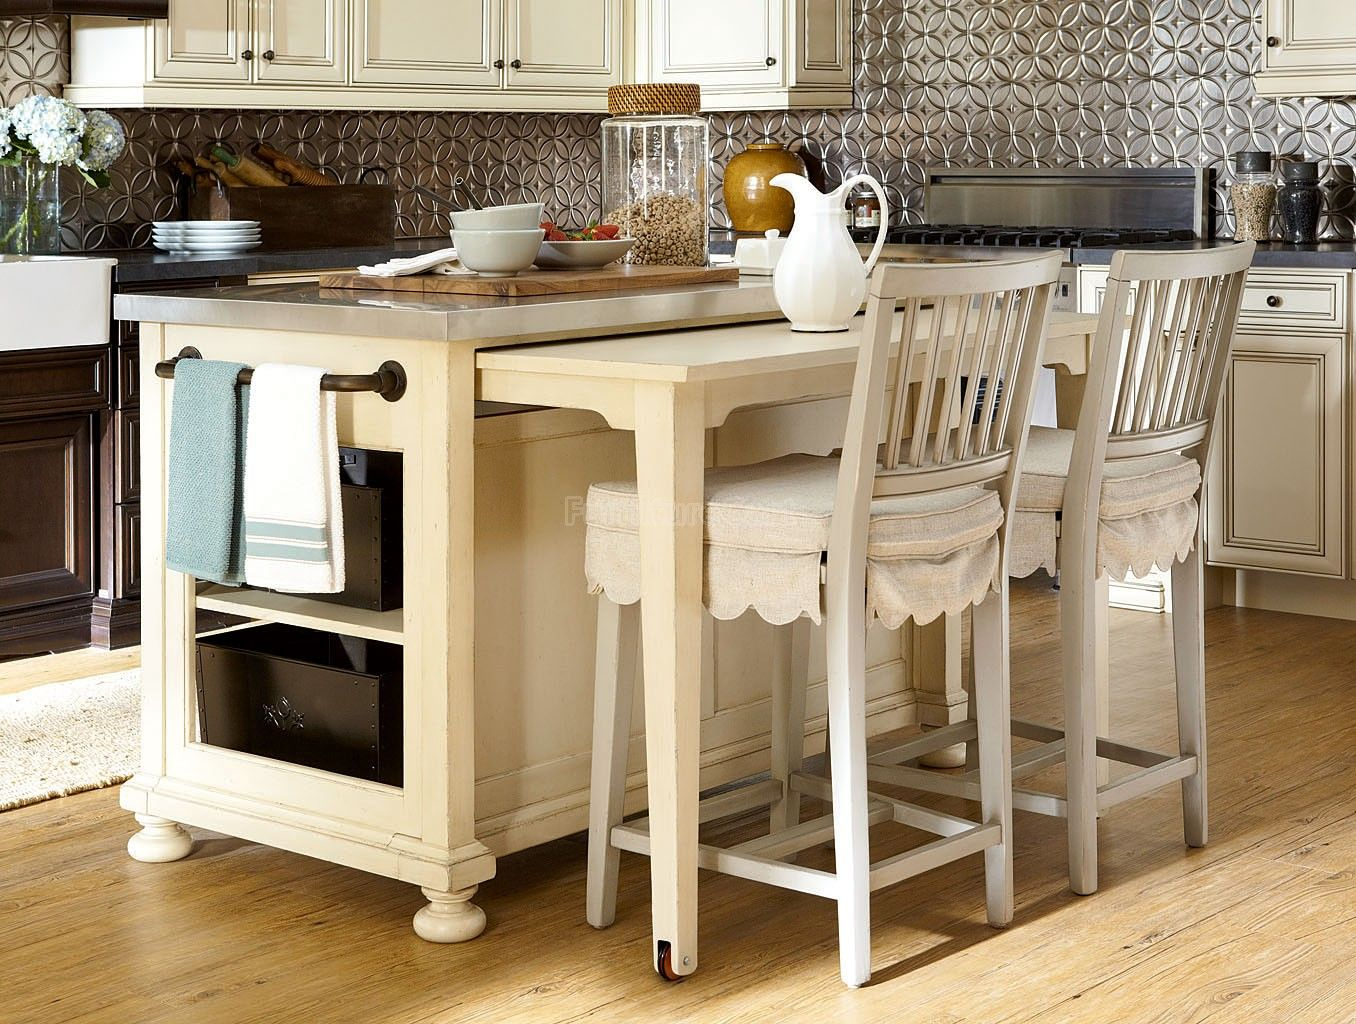 river house kitchen island set river boat kitchen island with seating portable kitchen on kitchen island id=59485